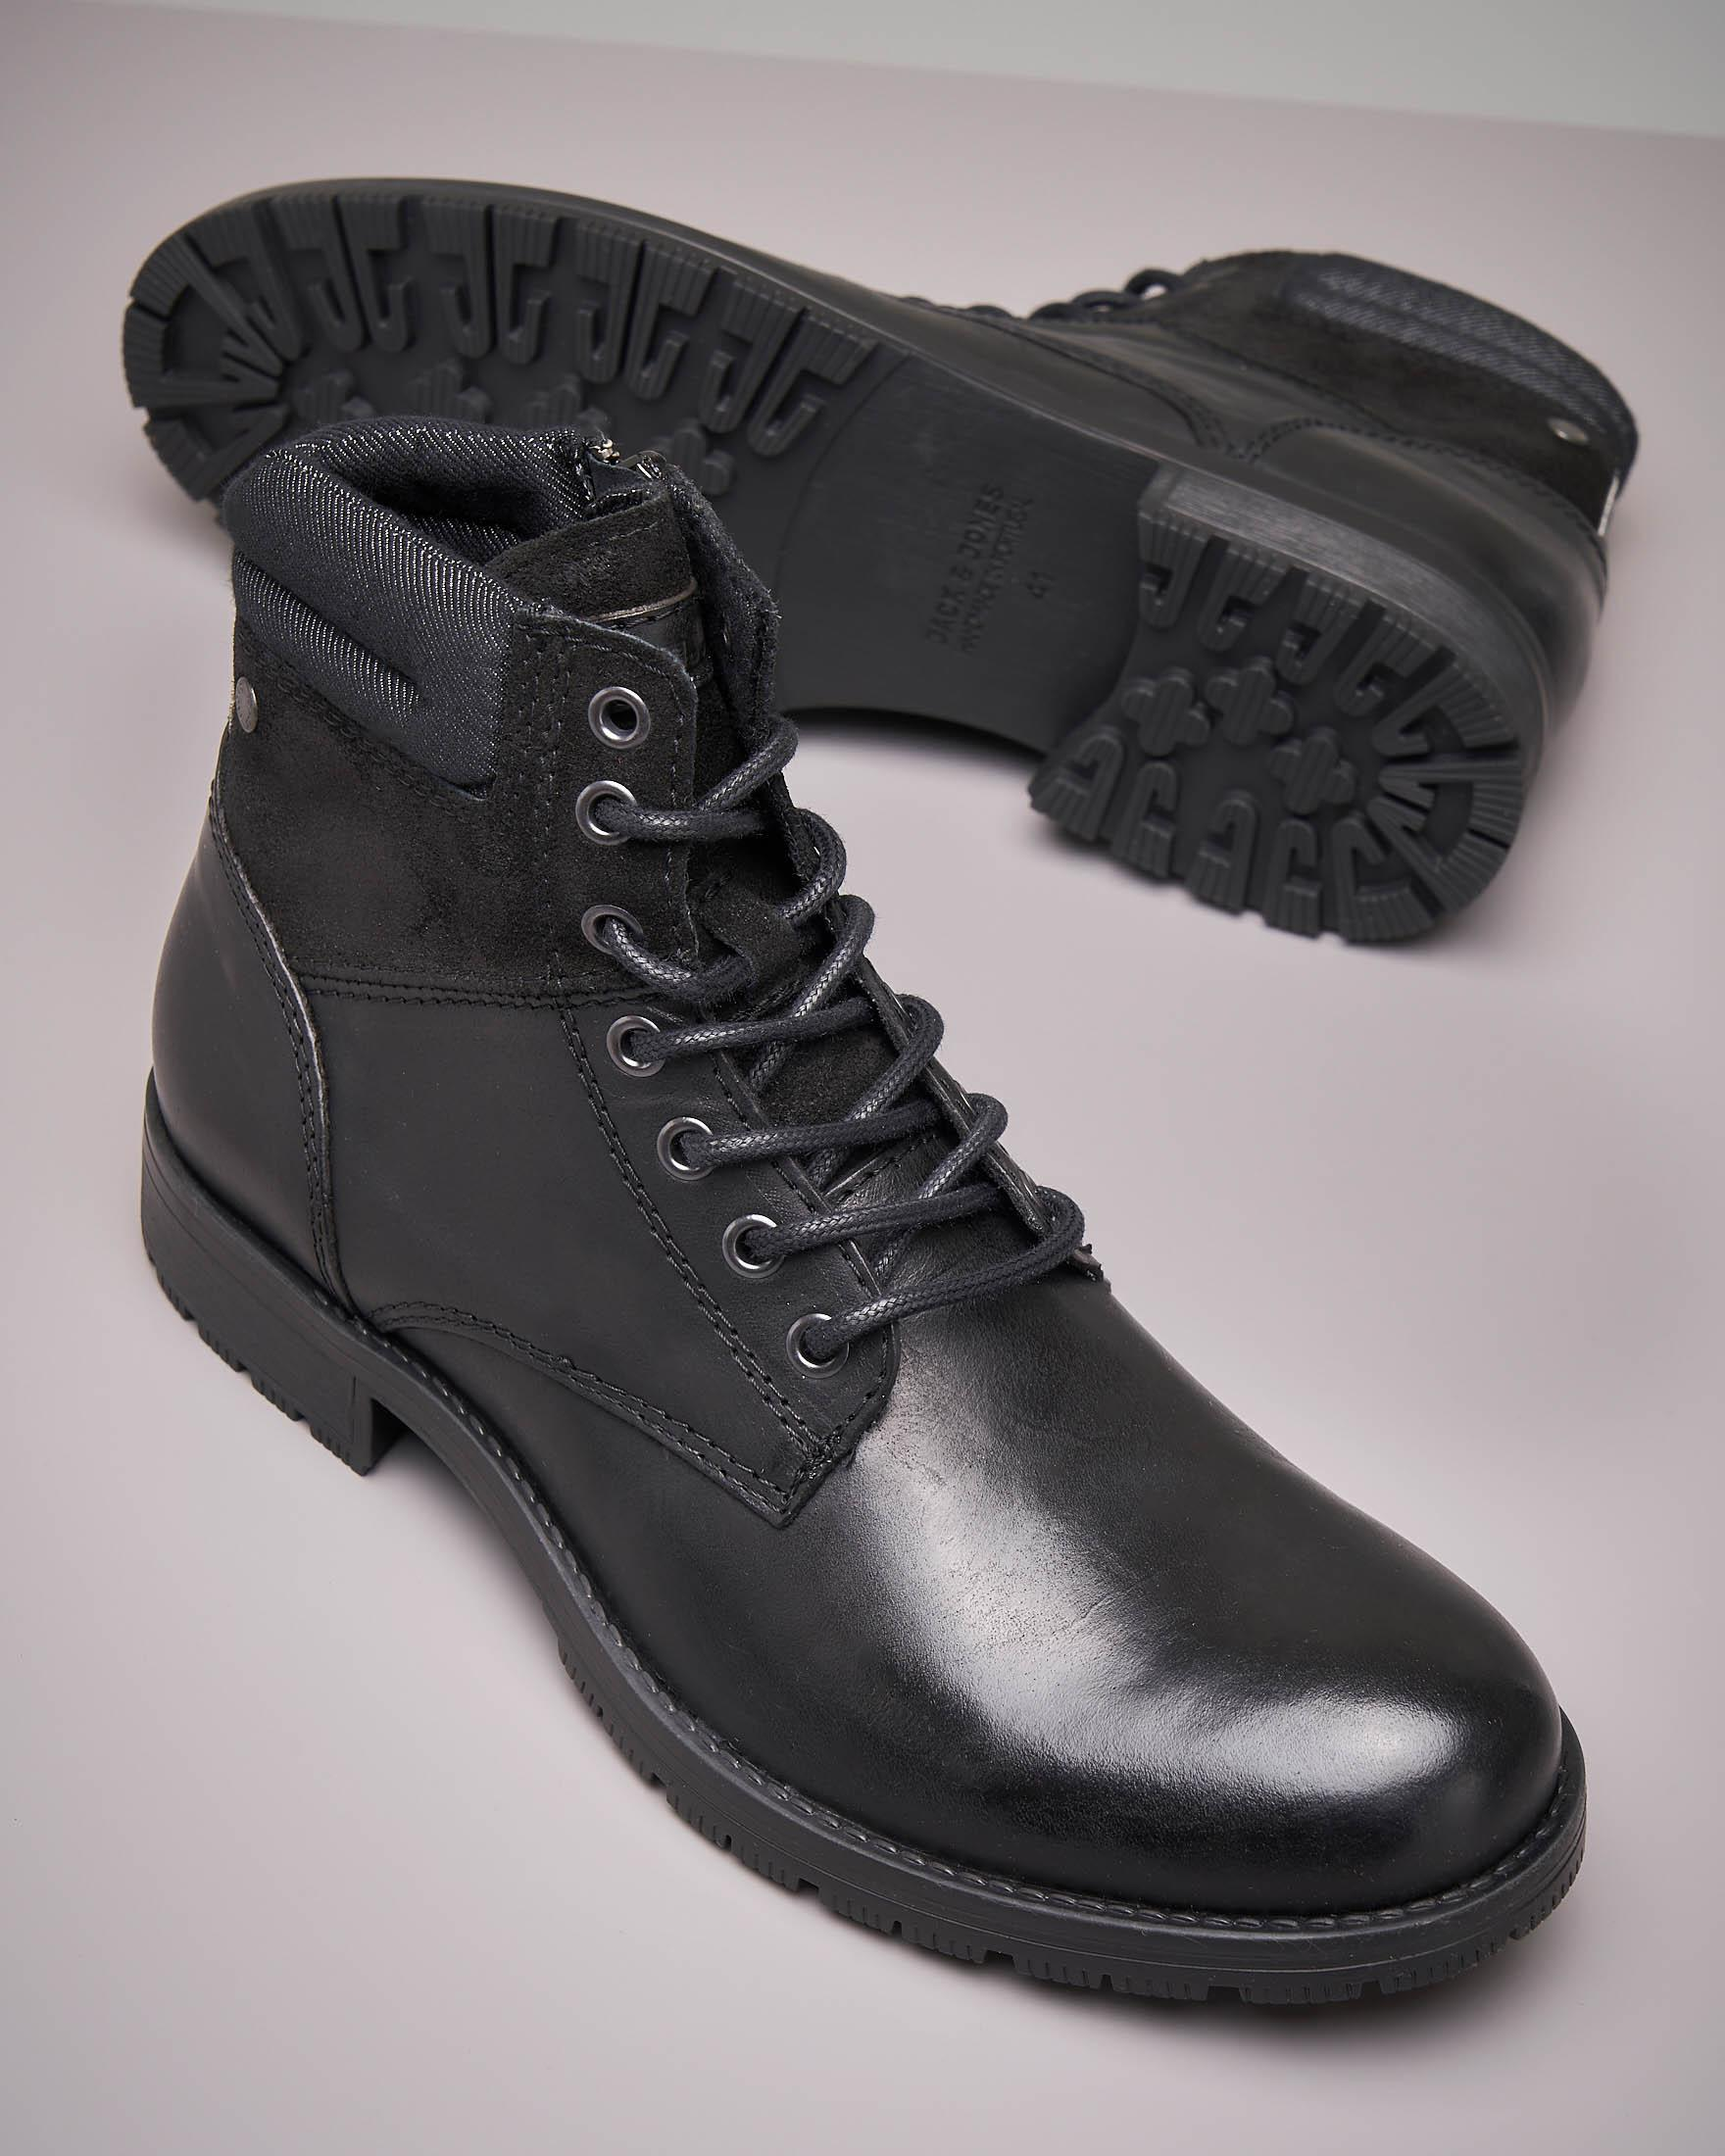 Boots neri in pelle